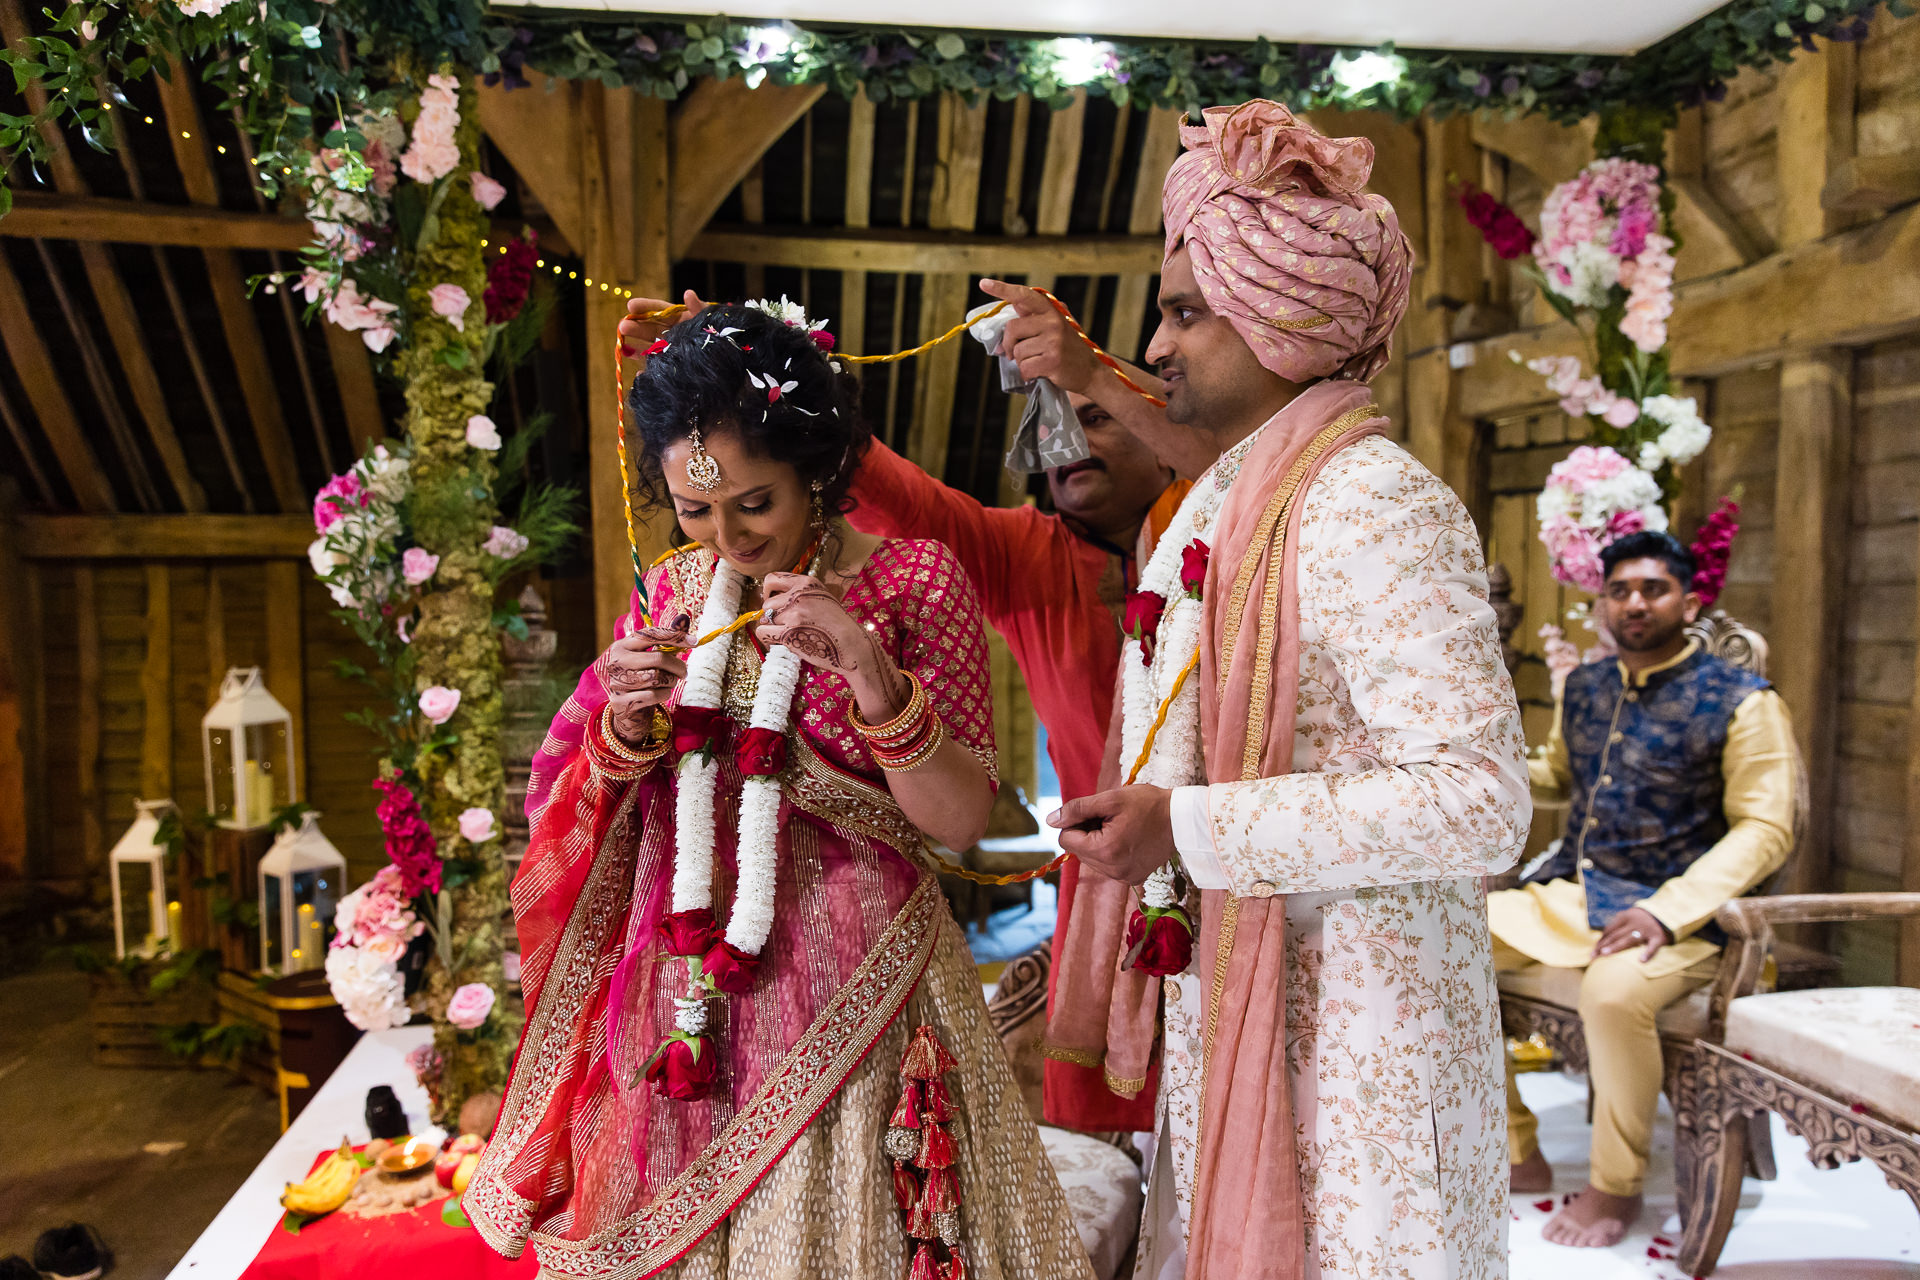 Asian bride and groom tangled up